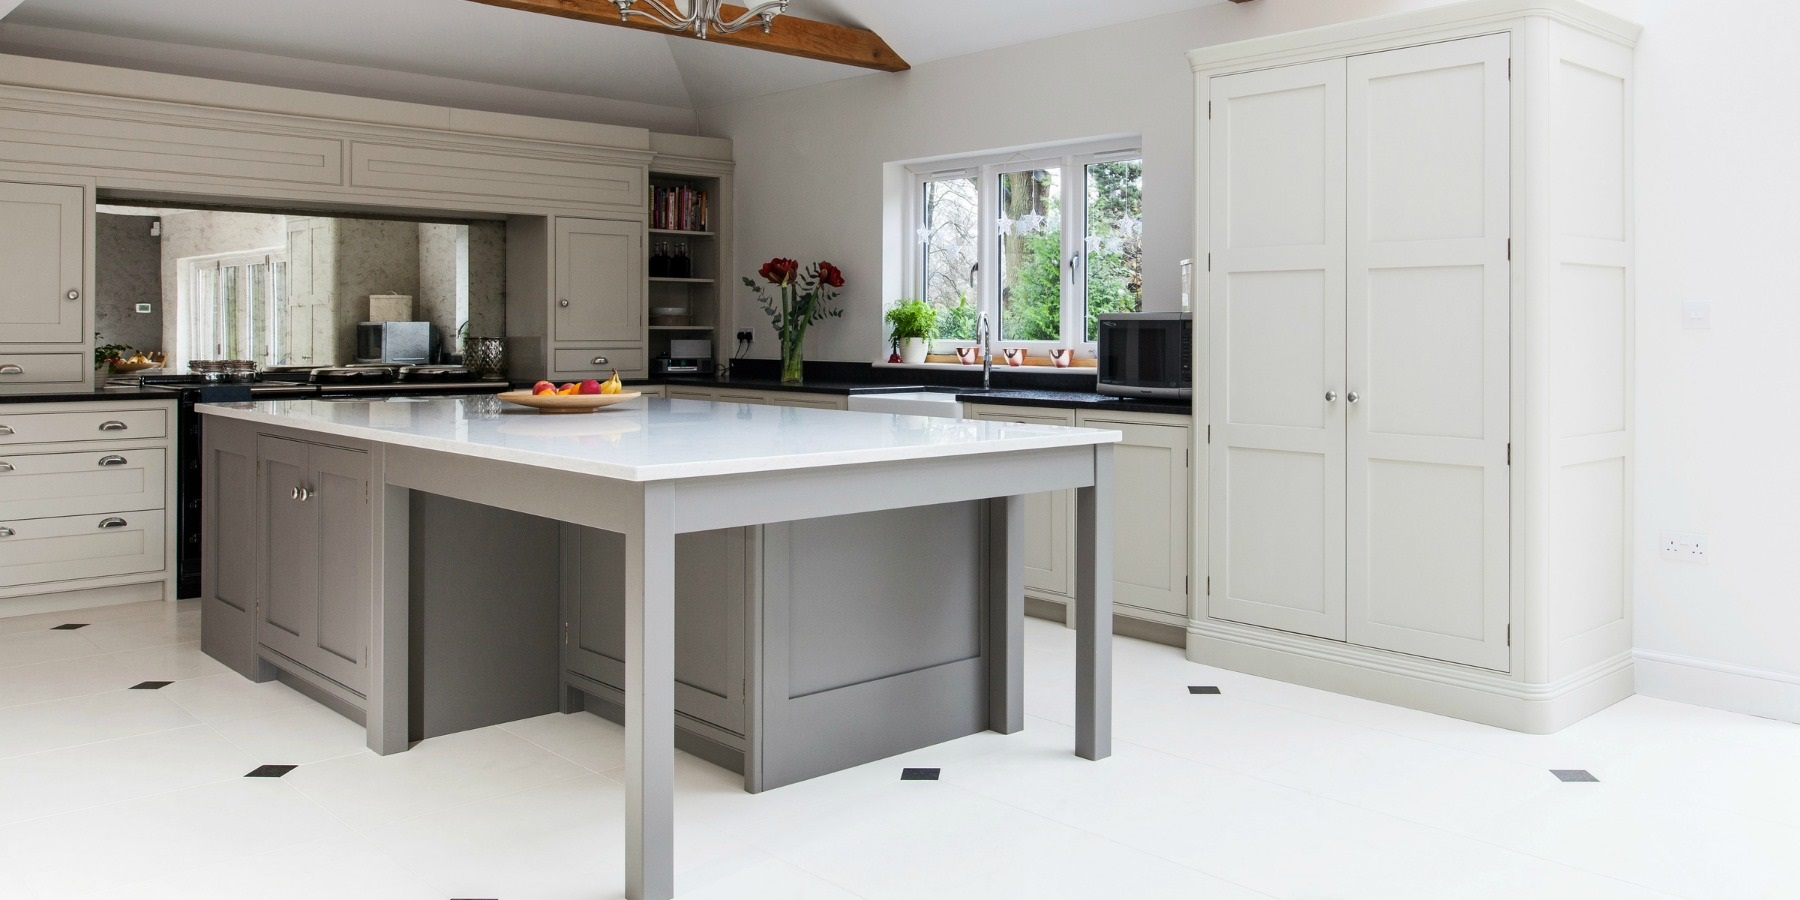 burlanes design a functional, organised beautiful kitchen -